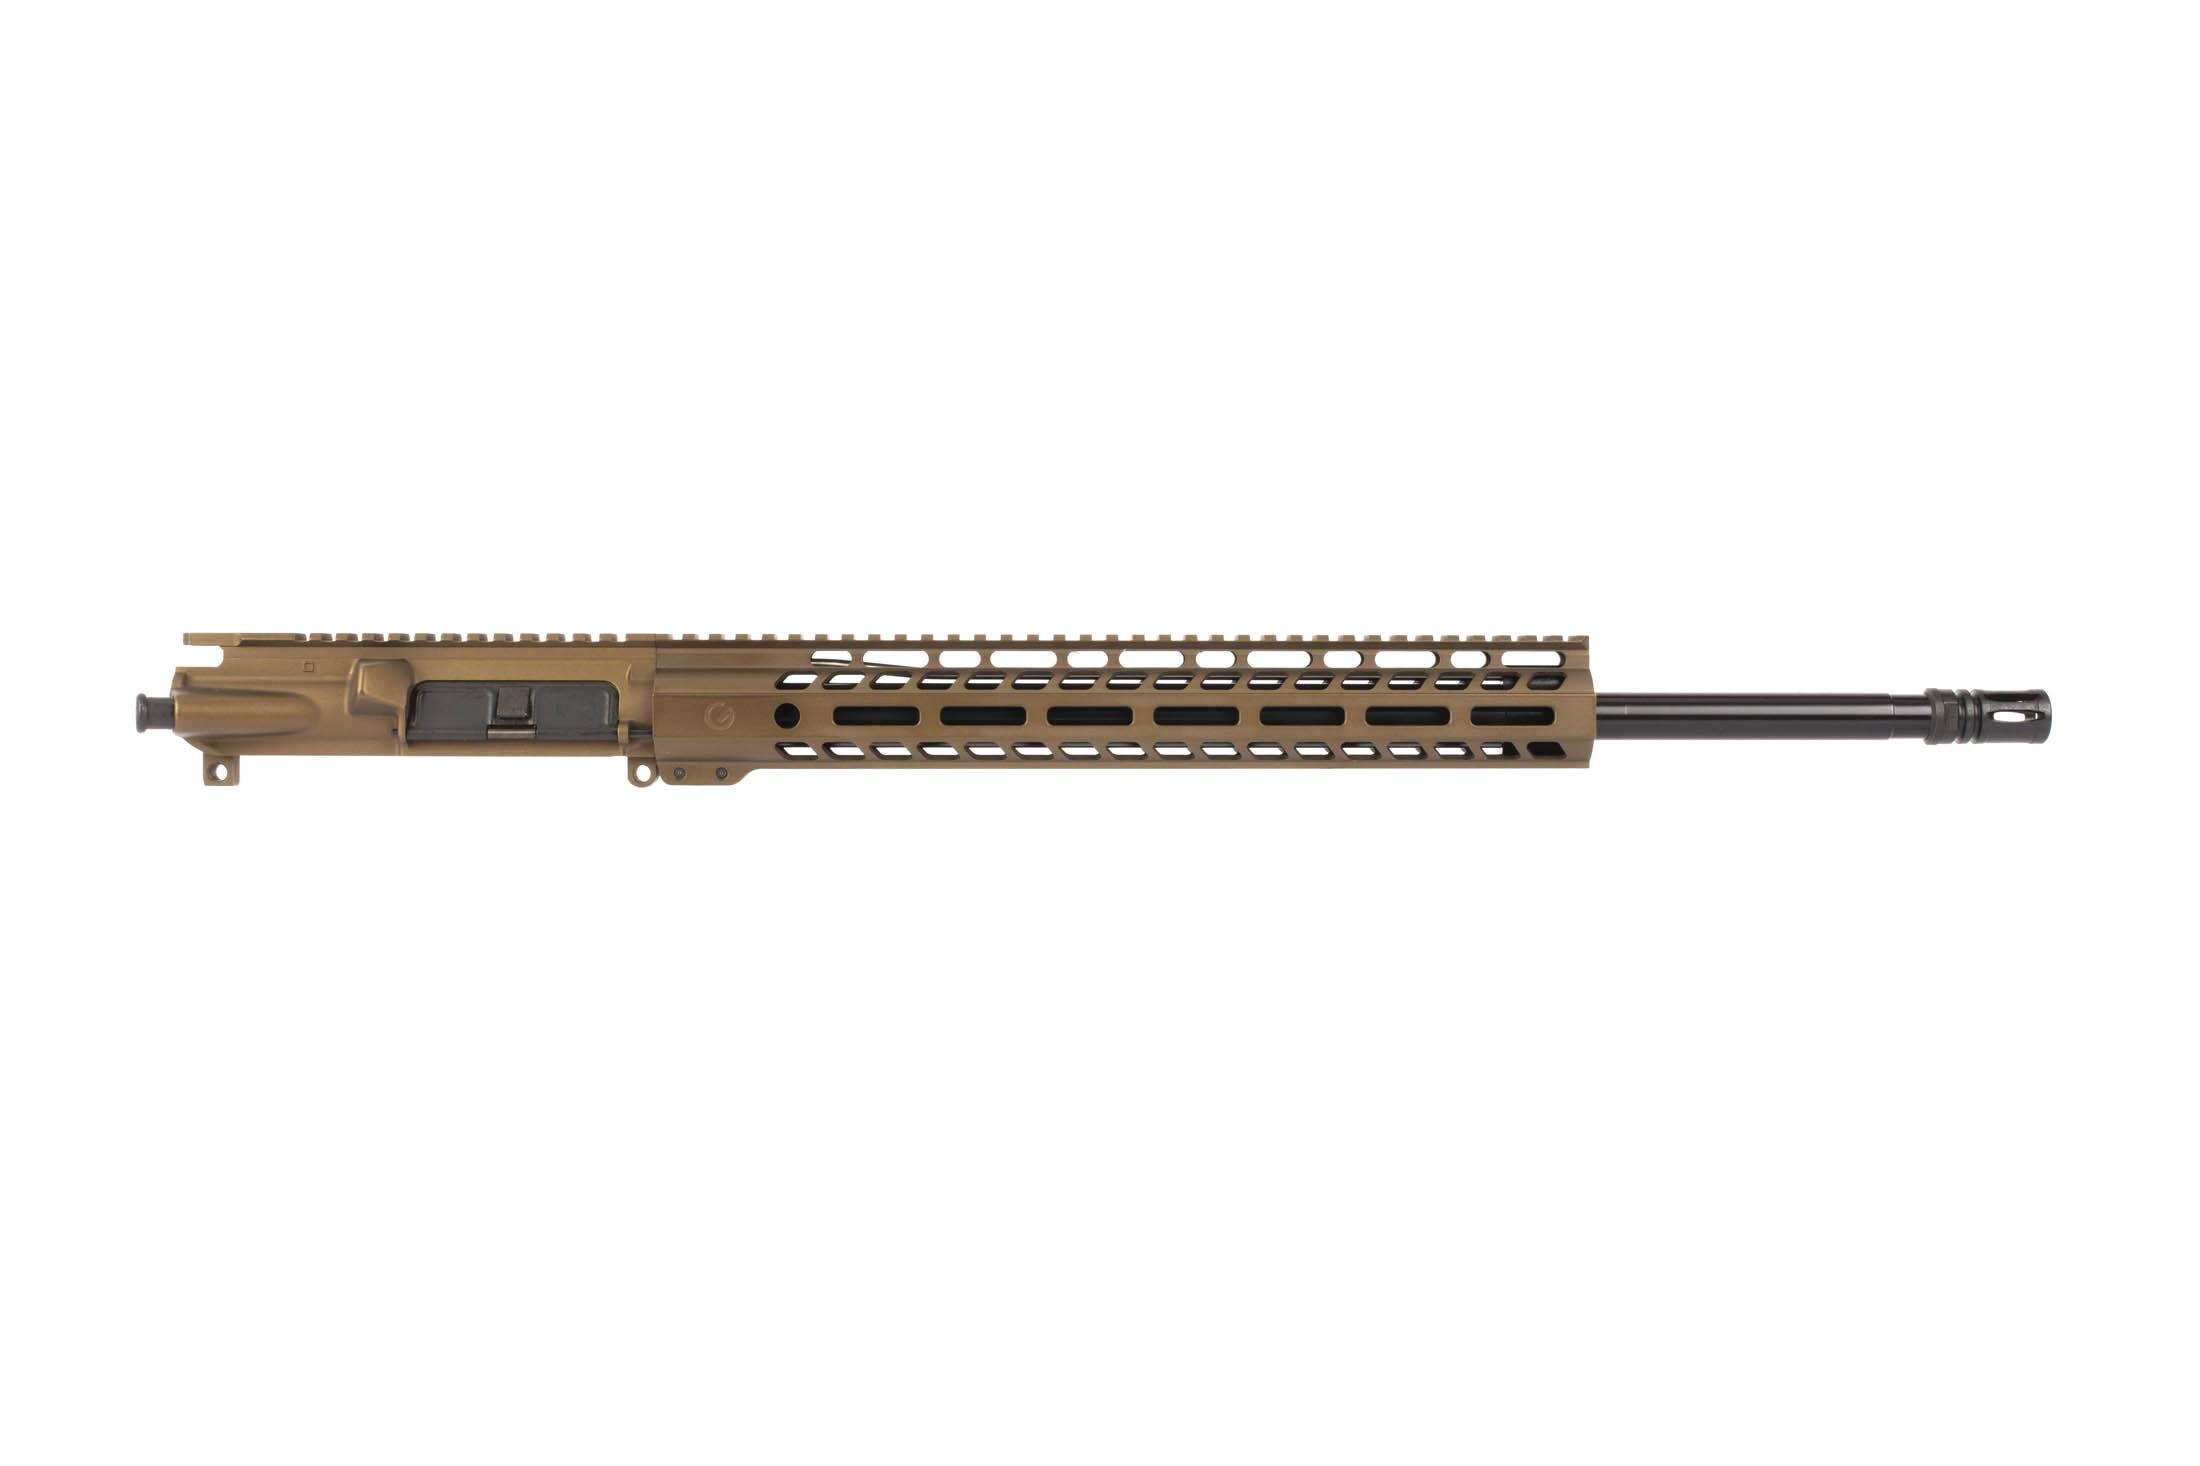 "The Ghost Firearms 20 6.5 Grendel Elite Rifle Length Barreled Upper includes a 14"" M-LOK rail"